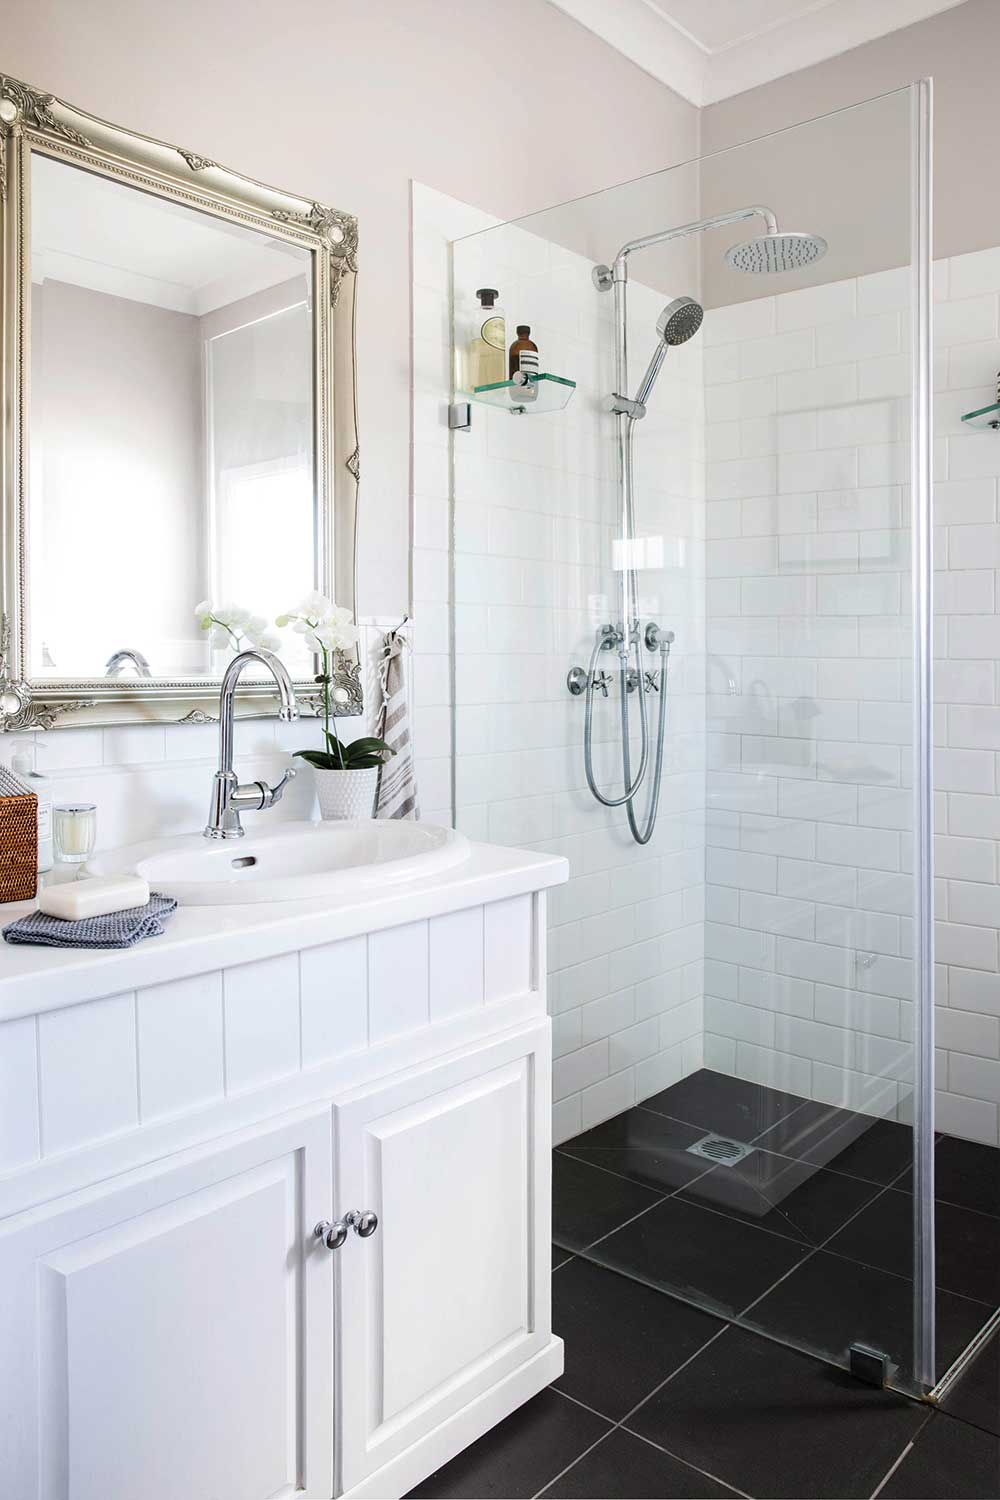 Country Classic: A Low Cost Bathroom Renovation